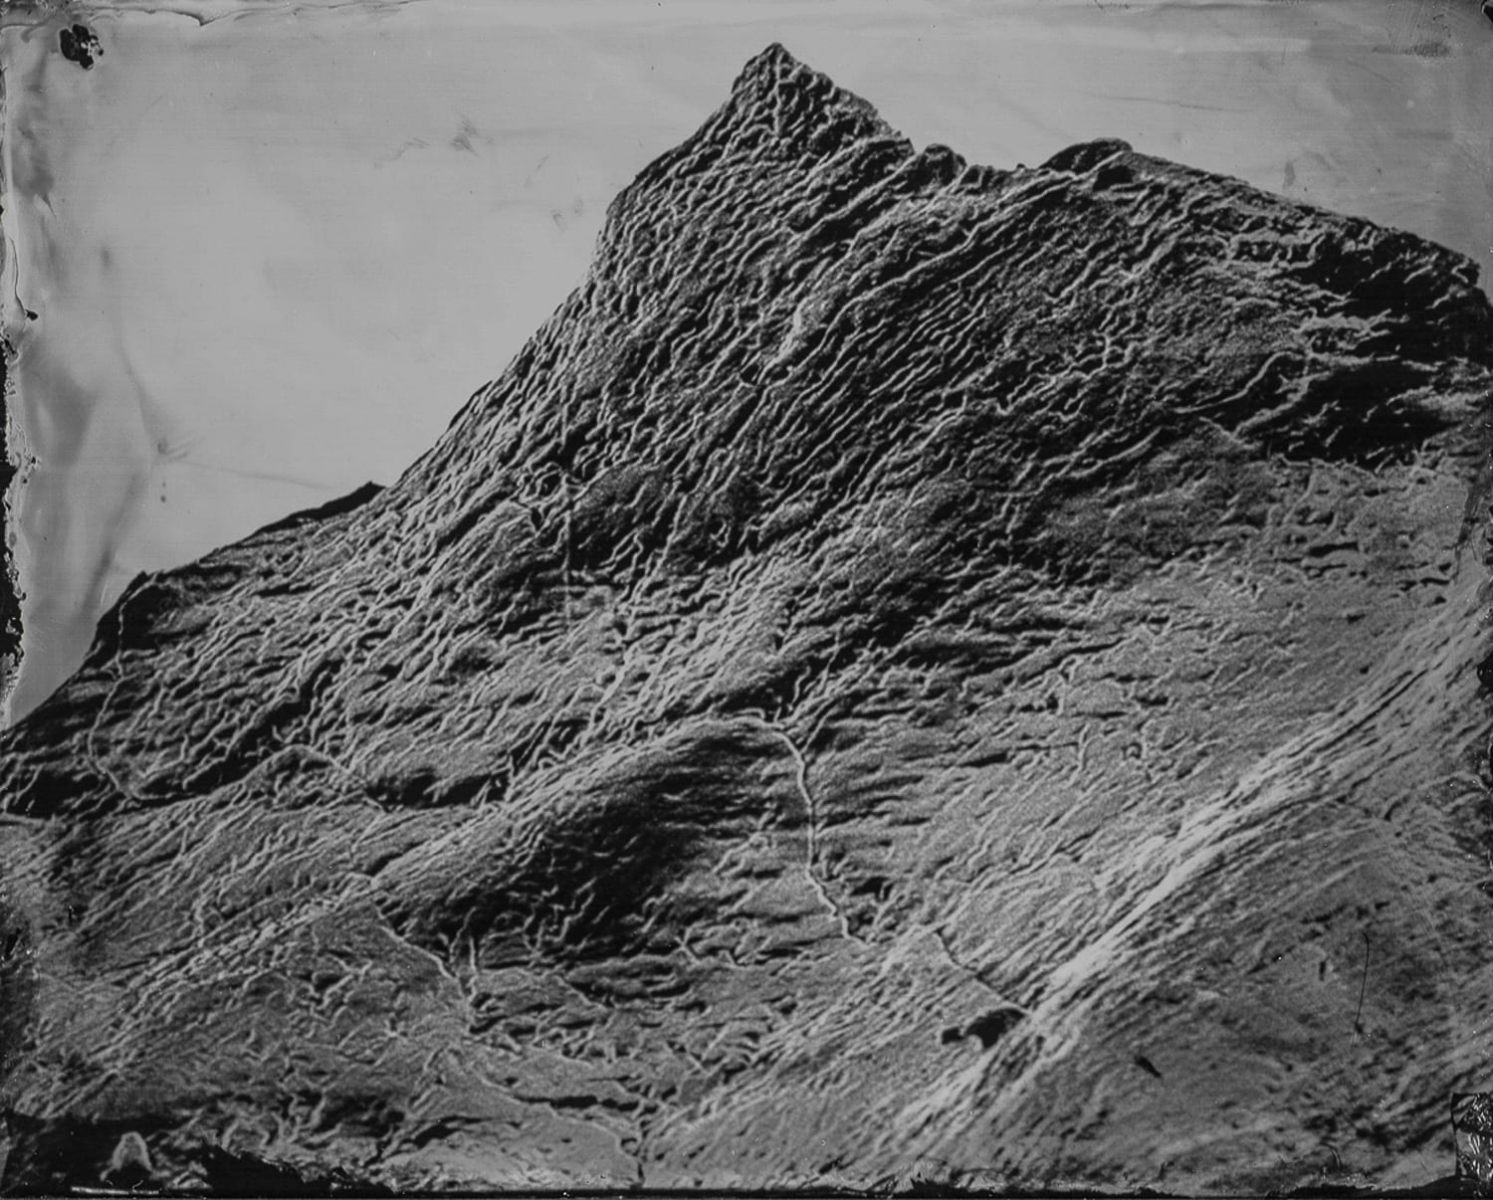 """Landscape VI,"" 2019. Wet Plate Collodion glass plate from a scanning electron microscope"